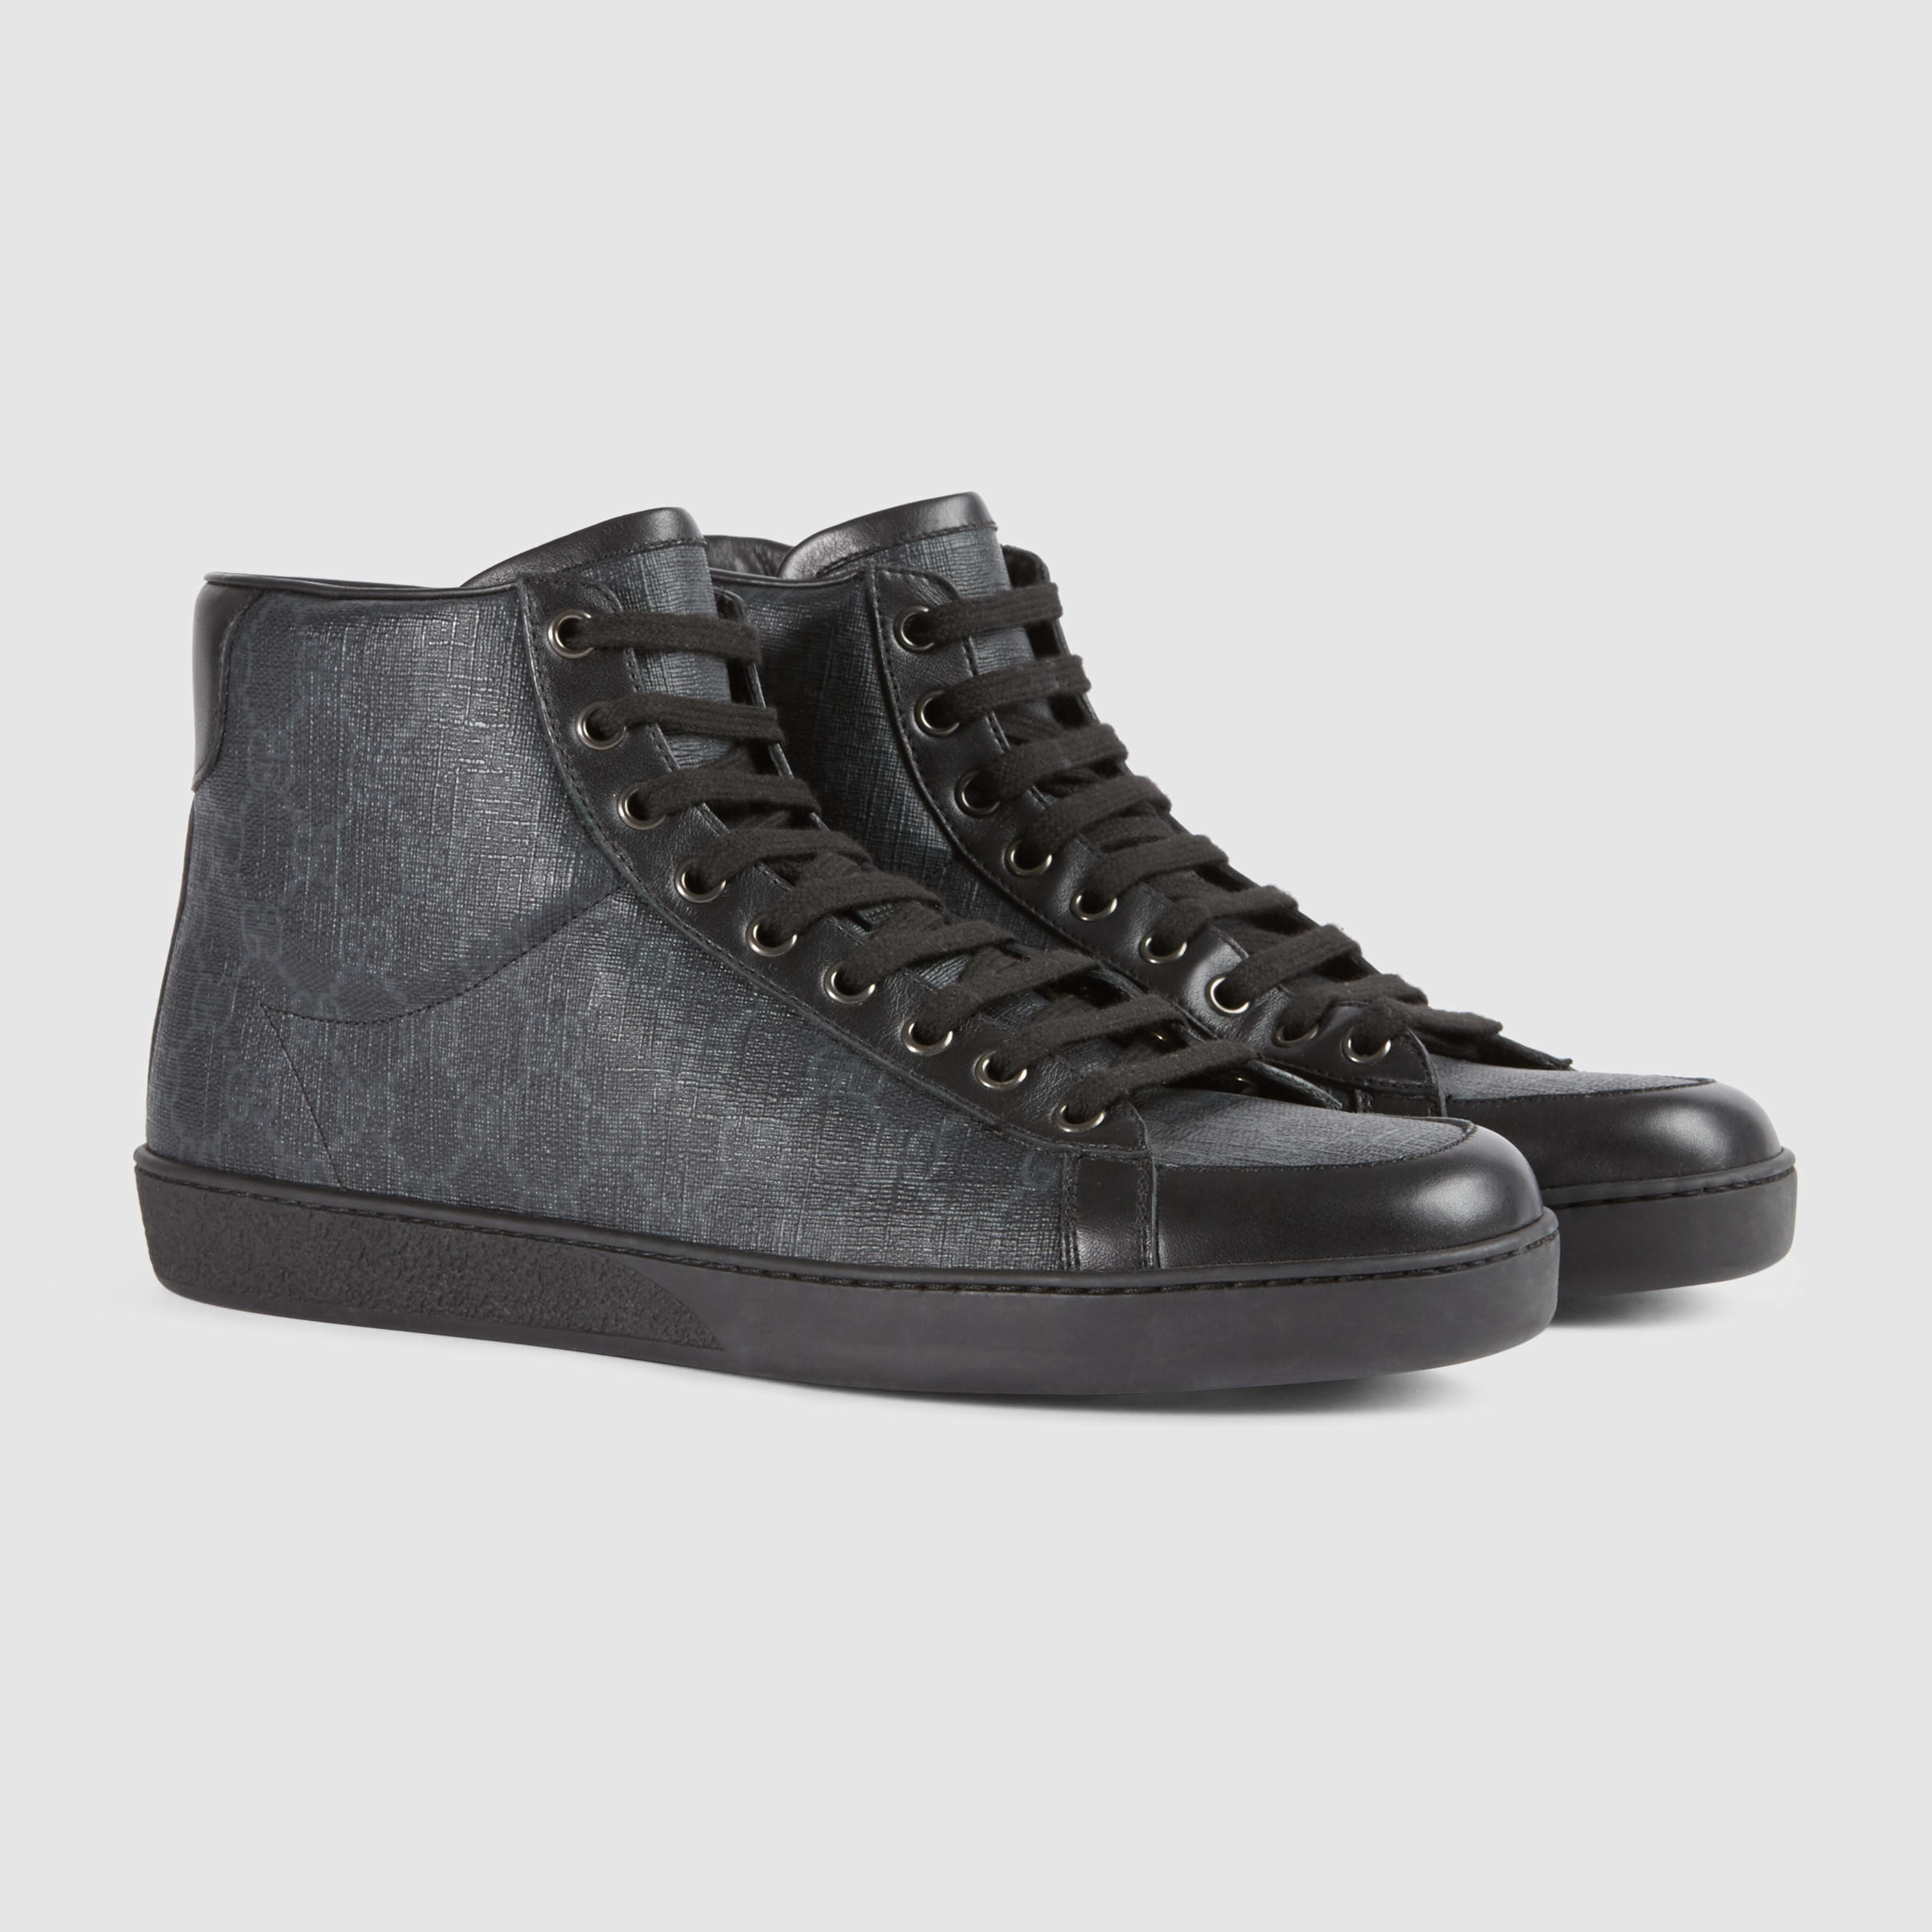 lyst gucci gg supreme high top sneaker in gray for men. Black Bedroom Furniture Sets. Home Design Ideas